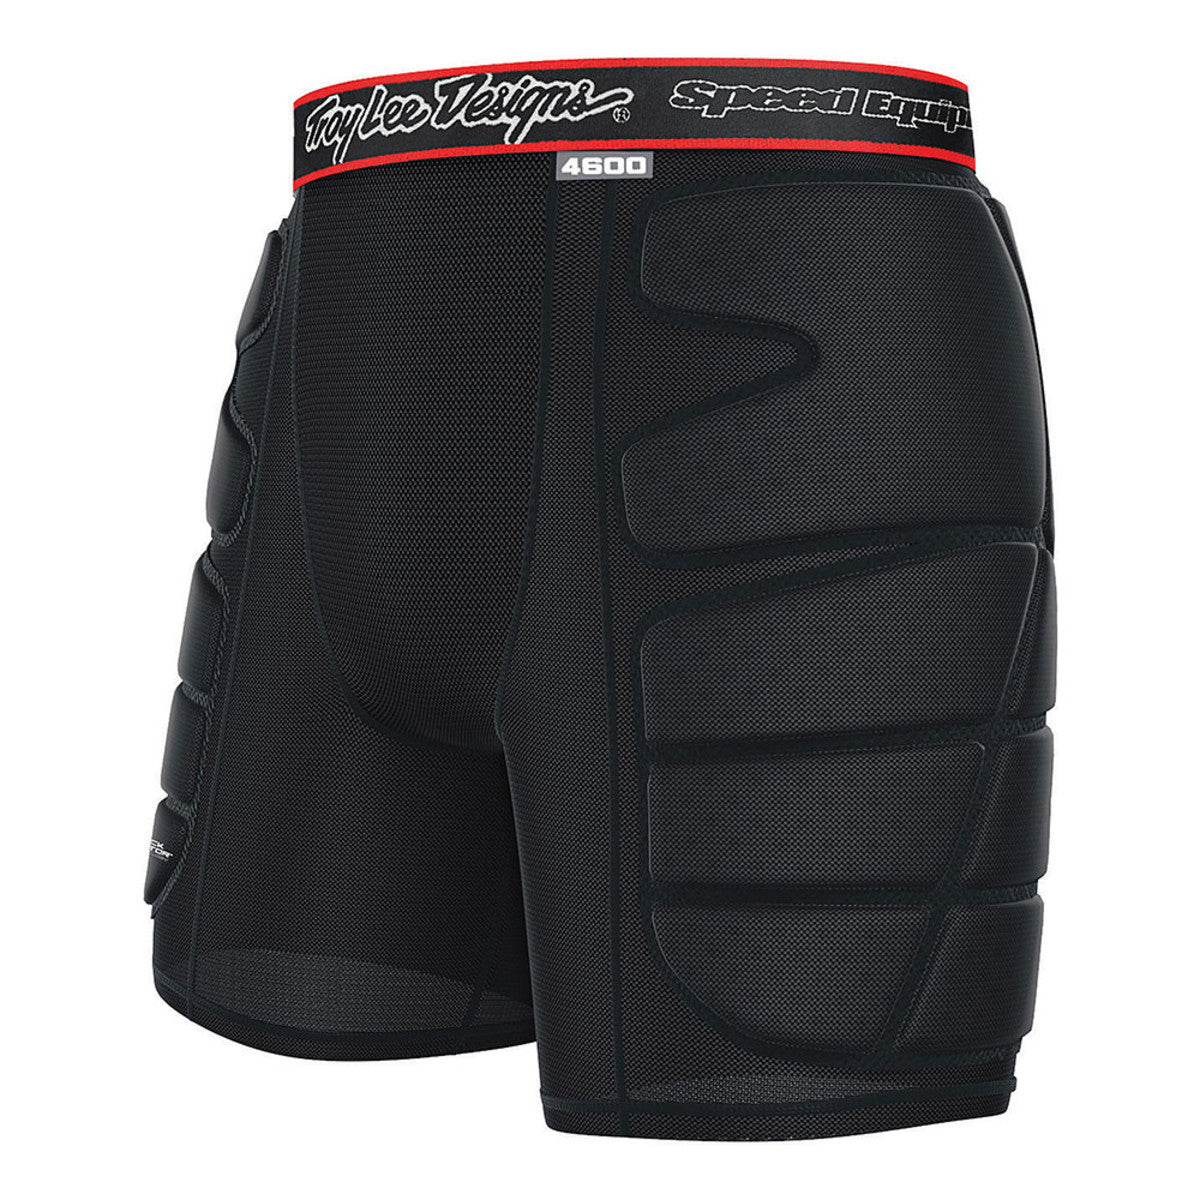 Protective Vented Youth Shorts- Black by Troy Lee Designs